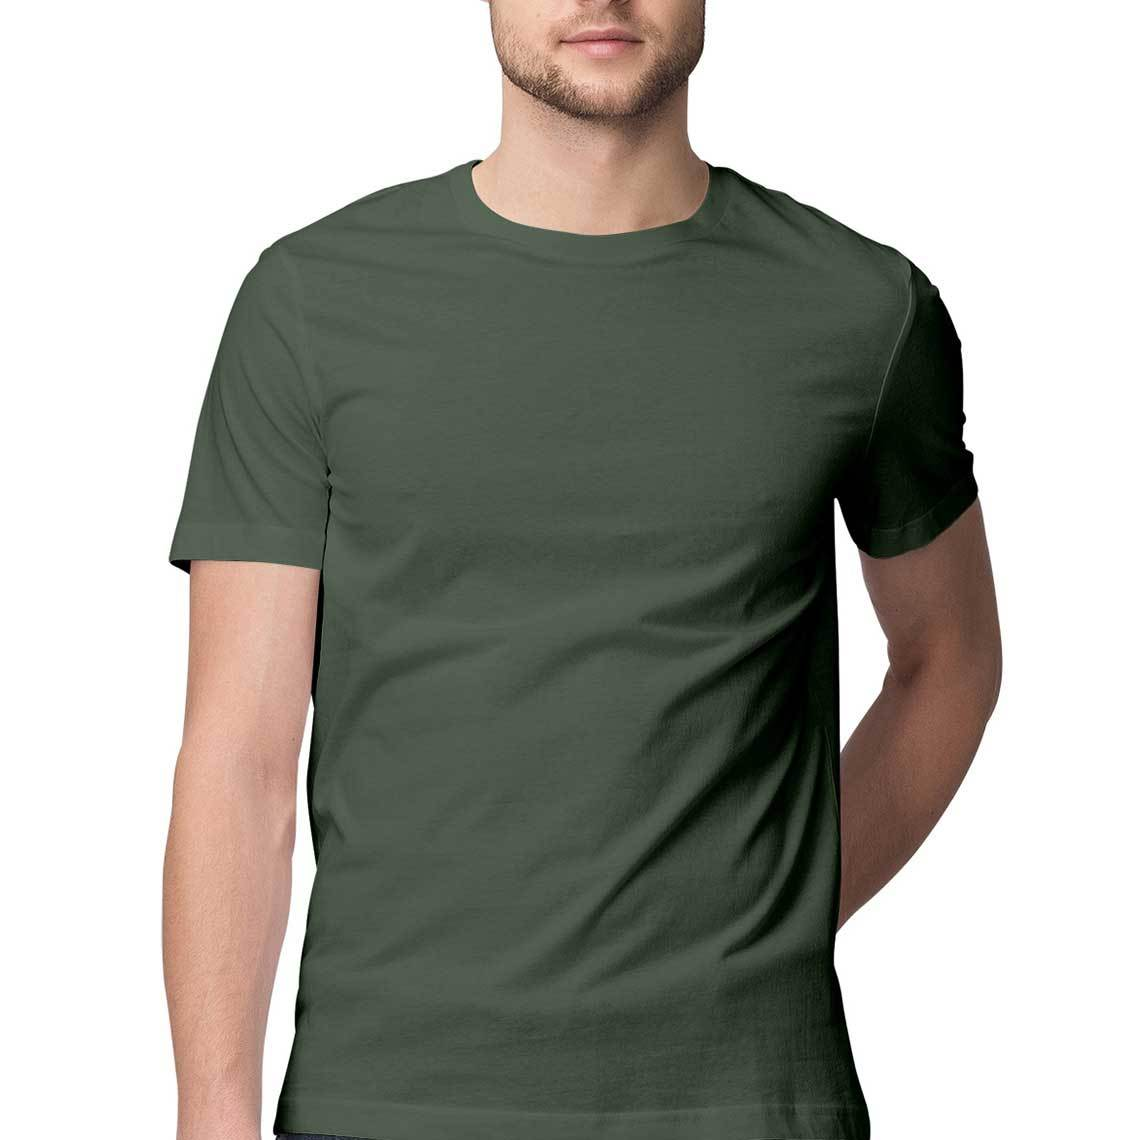 Men's Basics - Olive Green Half Sleeves Round Neck T-shirt